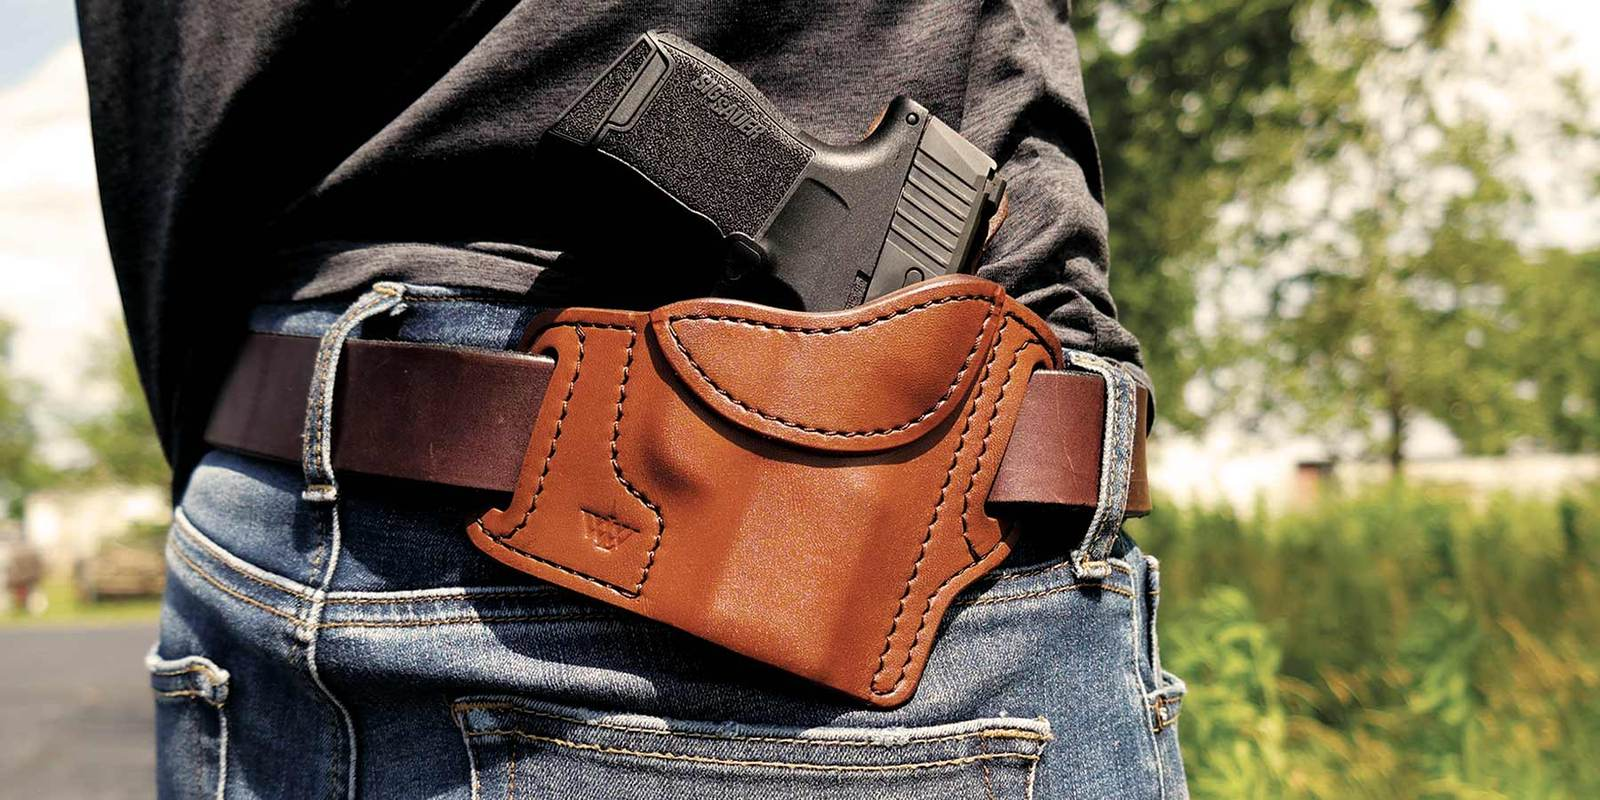 Best Leather IWB Holsters